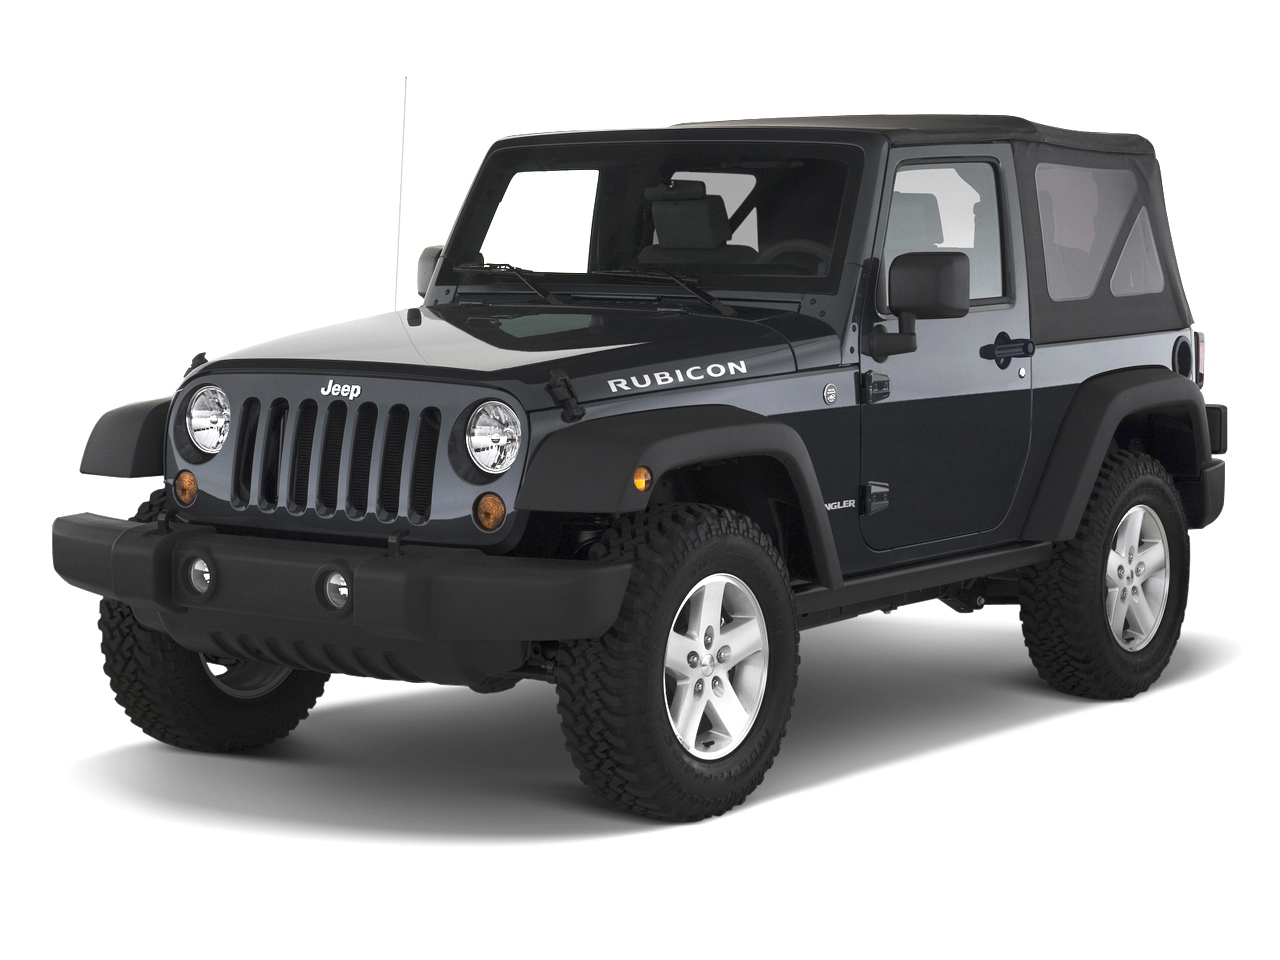 Reasons To Buy A Jeep Wrangler